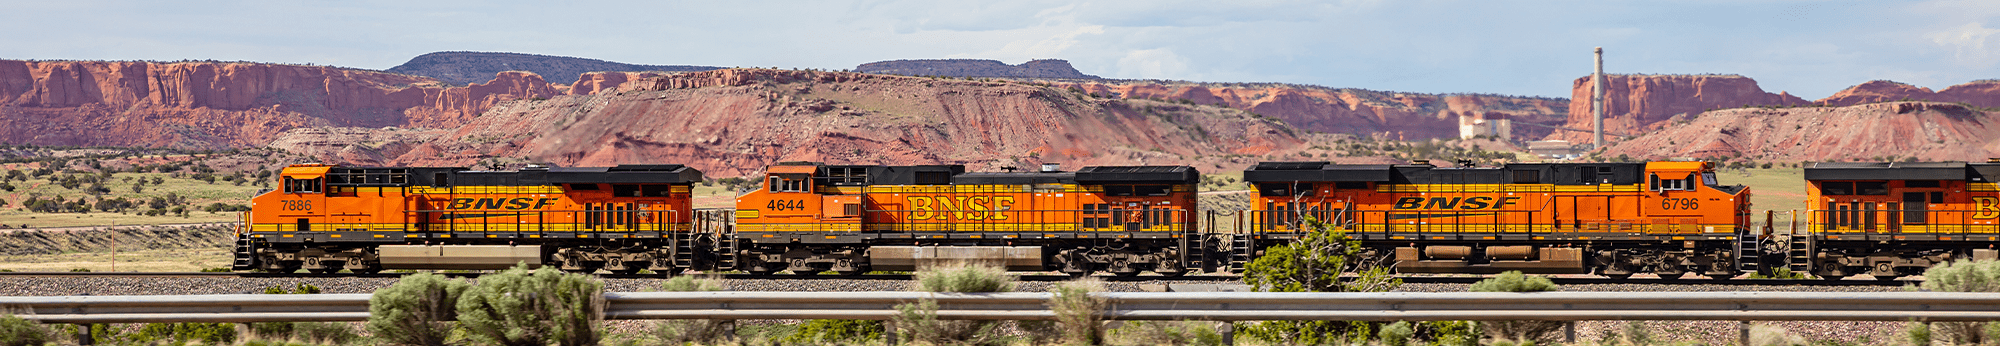 BNSF train running through the Arizona canyons